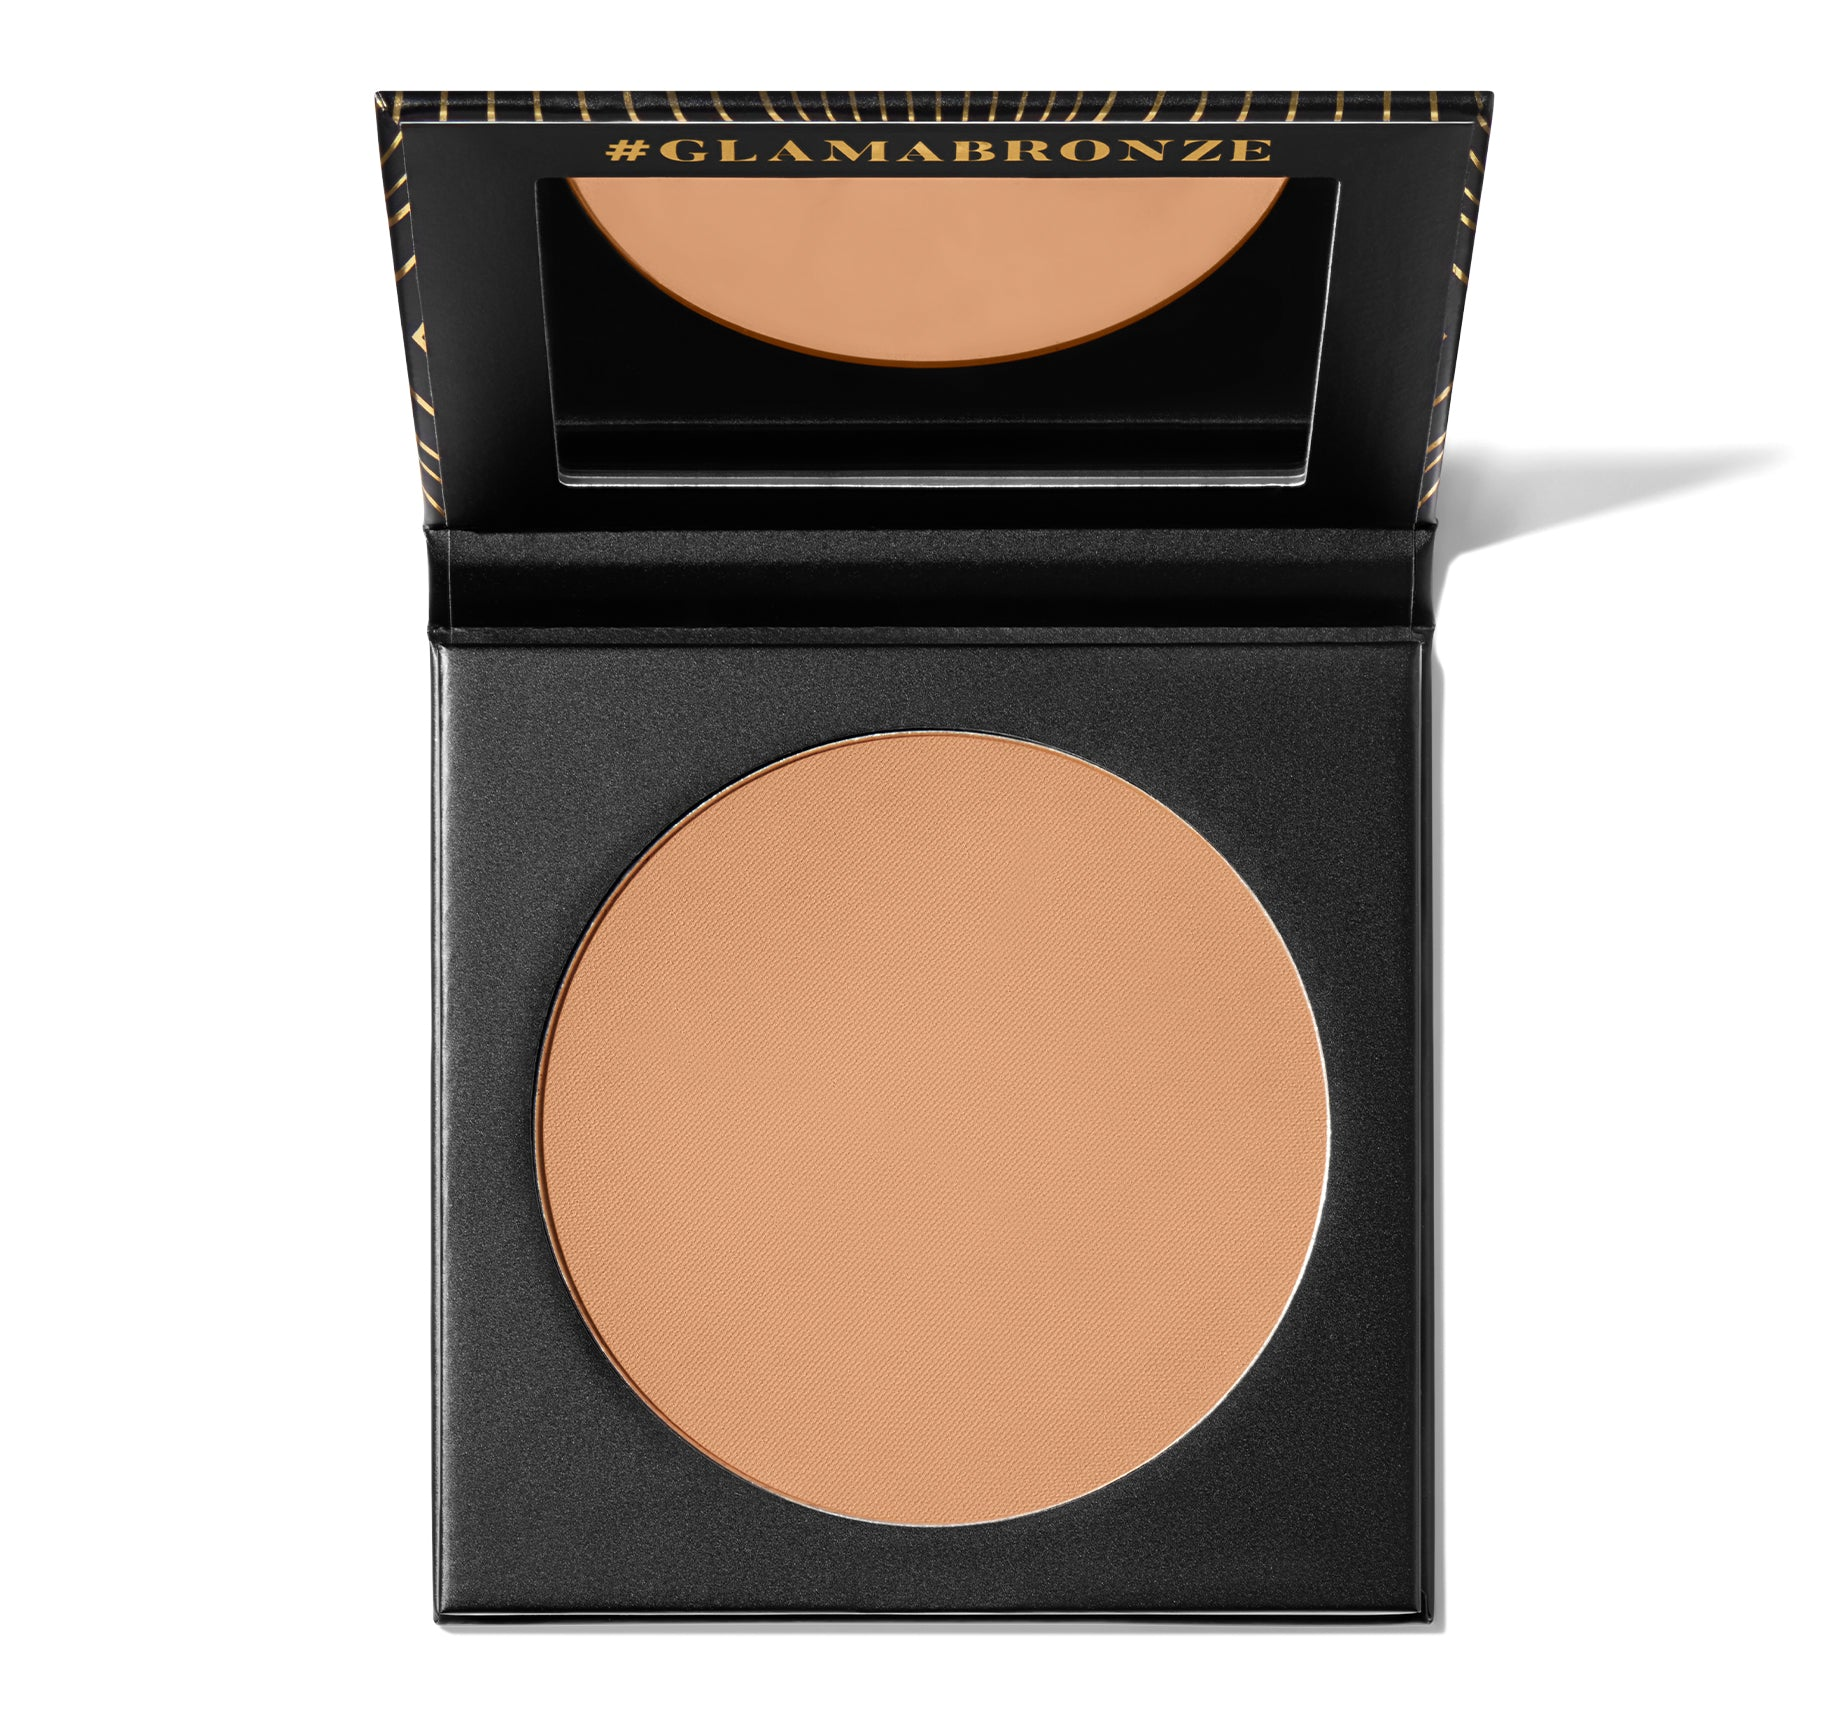 GLAMABRONZE FACE & BODY BRONZER - MASTERMIND, view larger image